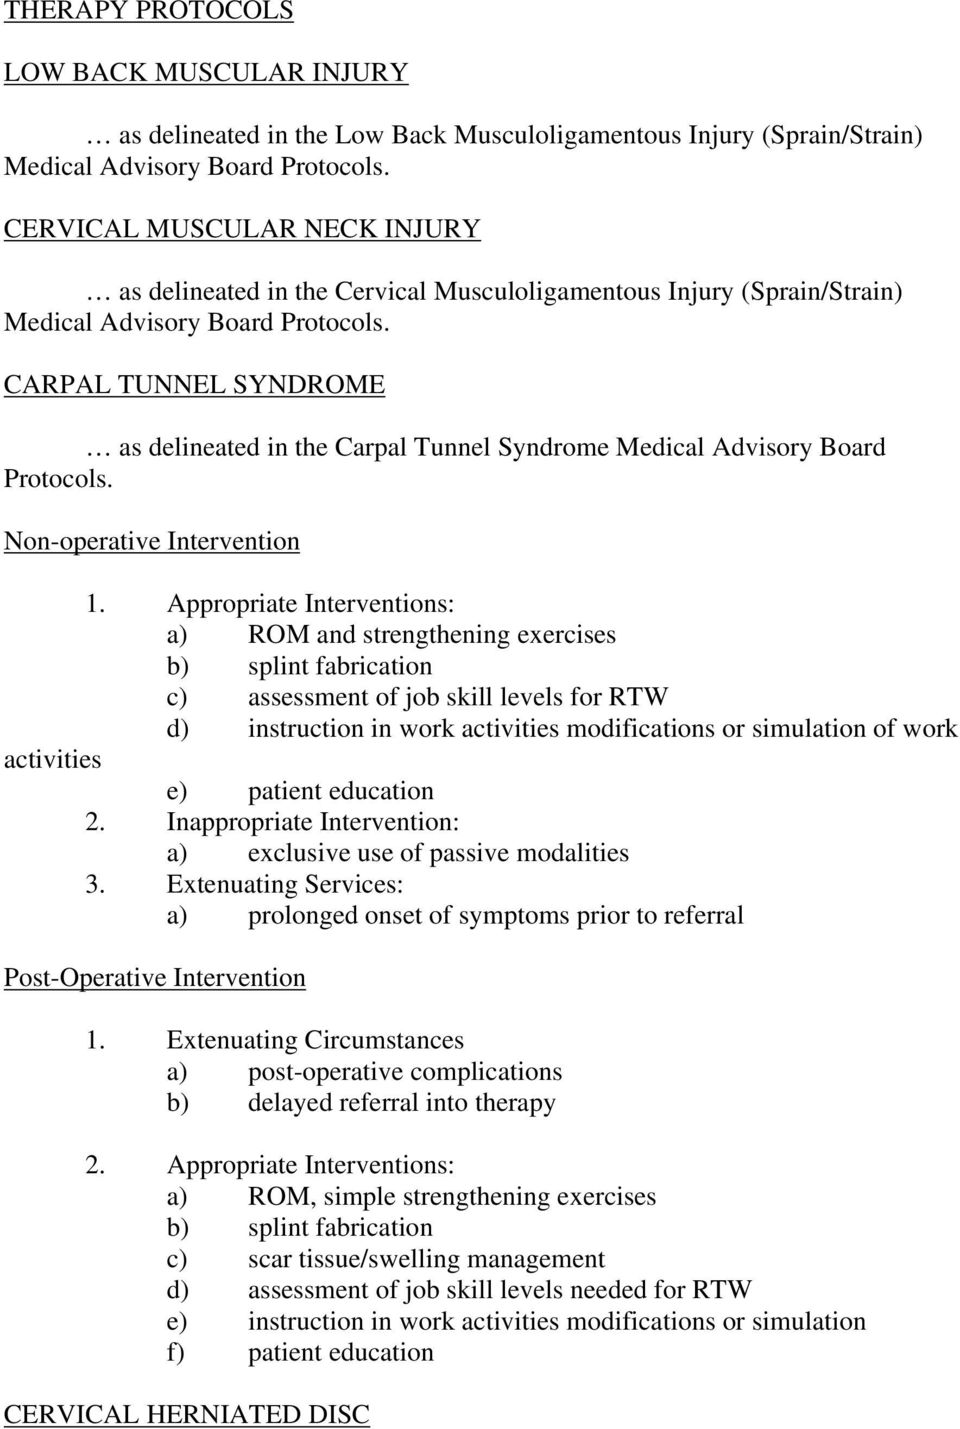 CARPAL TUNNEL SYNDROME as delineated in the Carpal Tunnel Syndrome Medical Advisory Board Protocols.